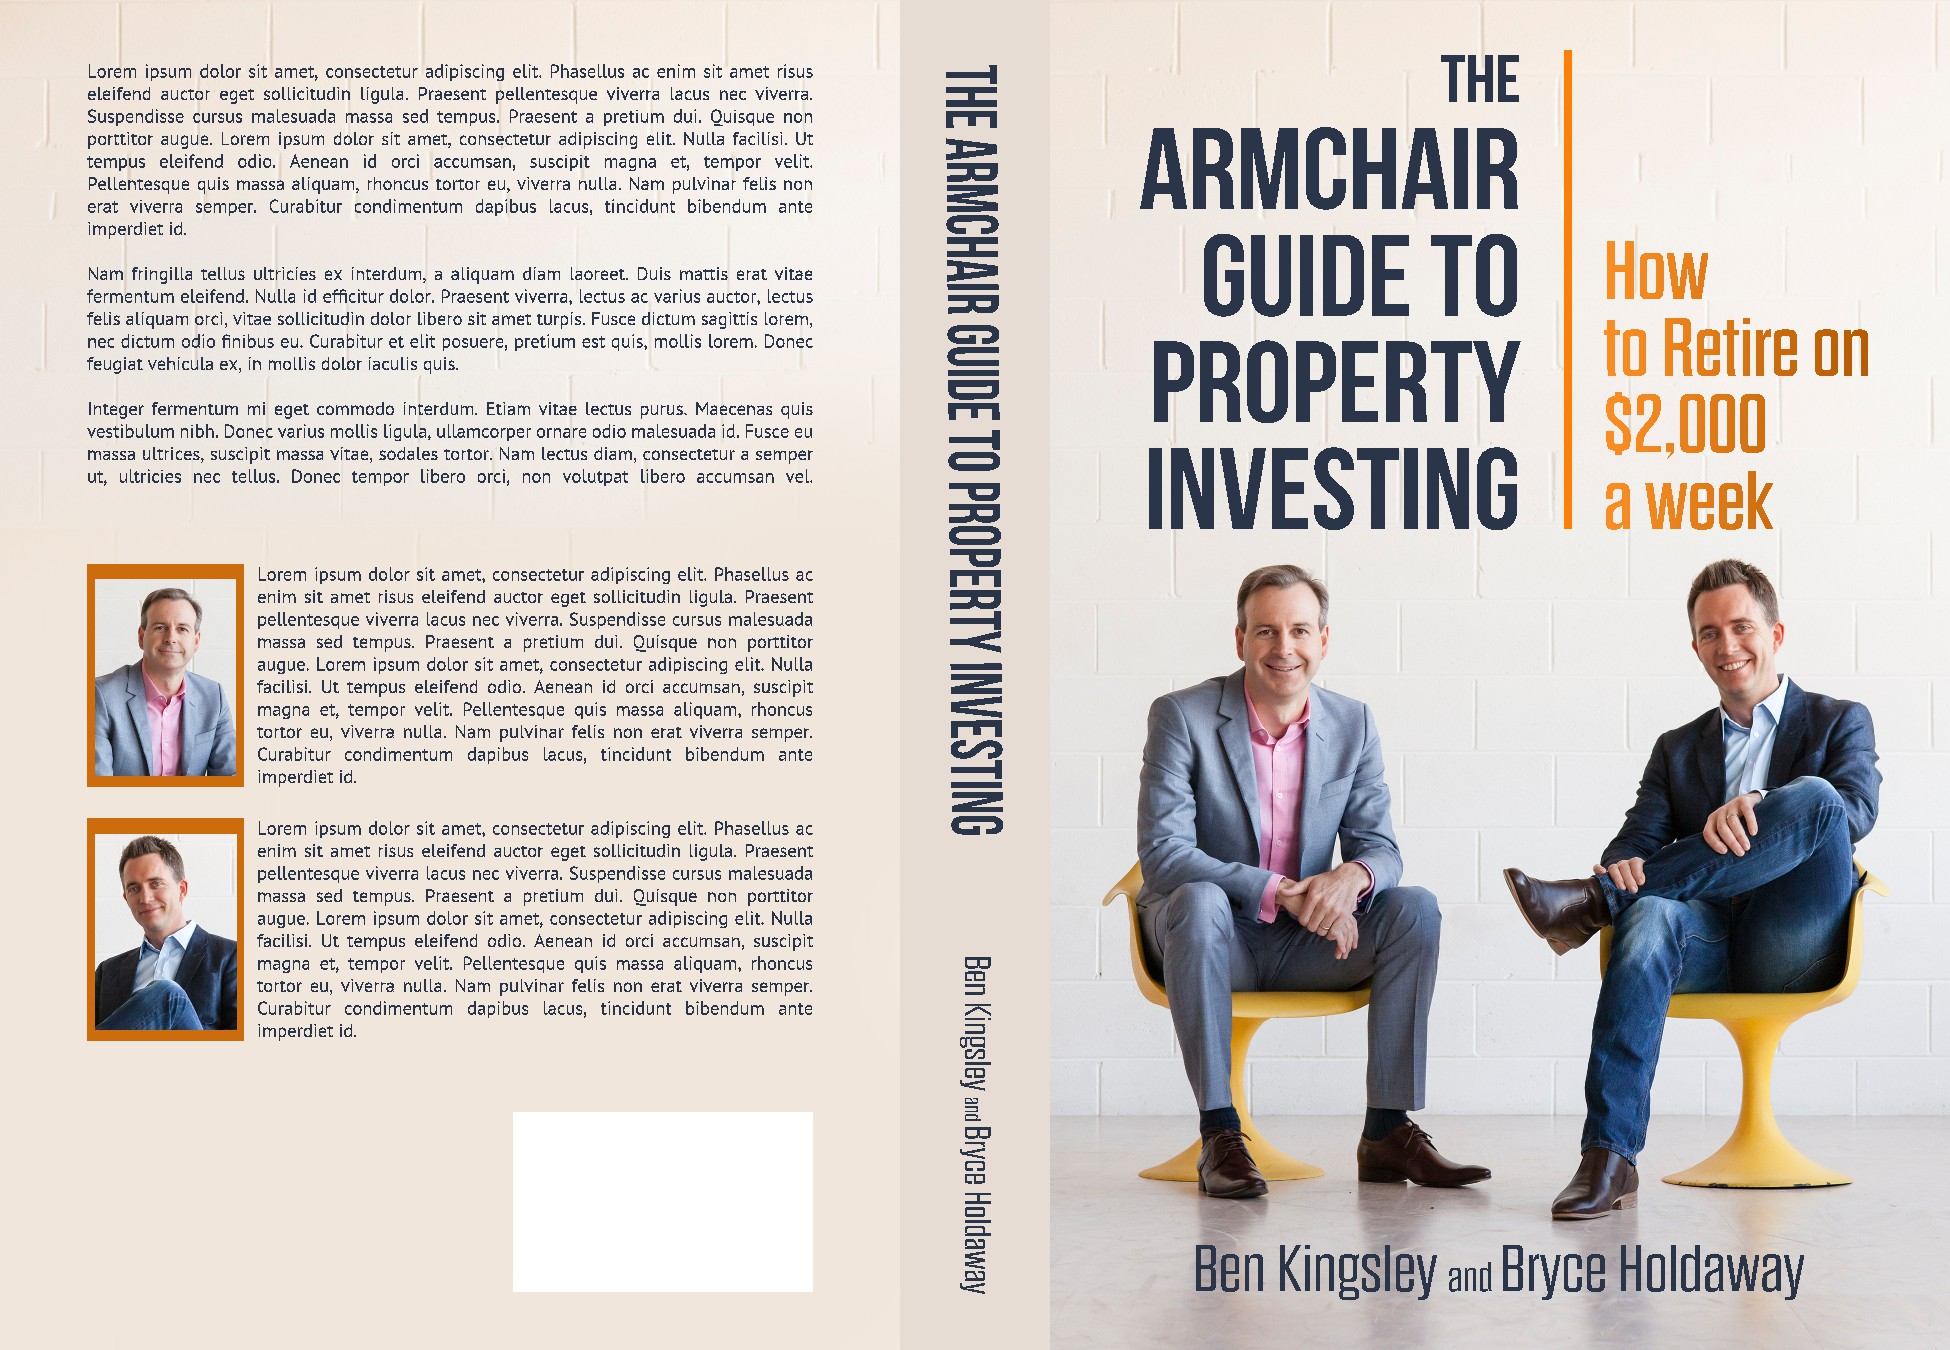 Creating a must-read book cover for Australian property investment readers